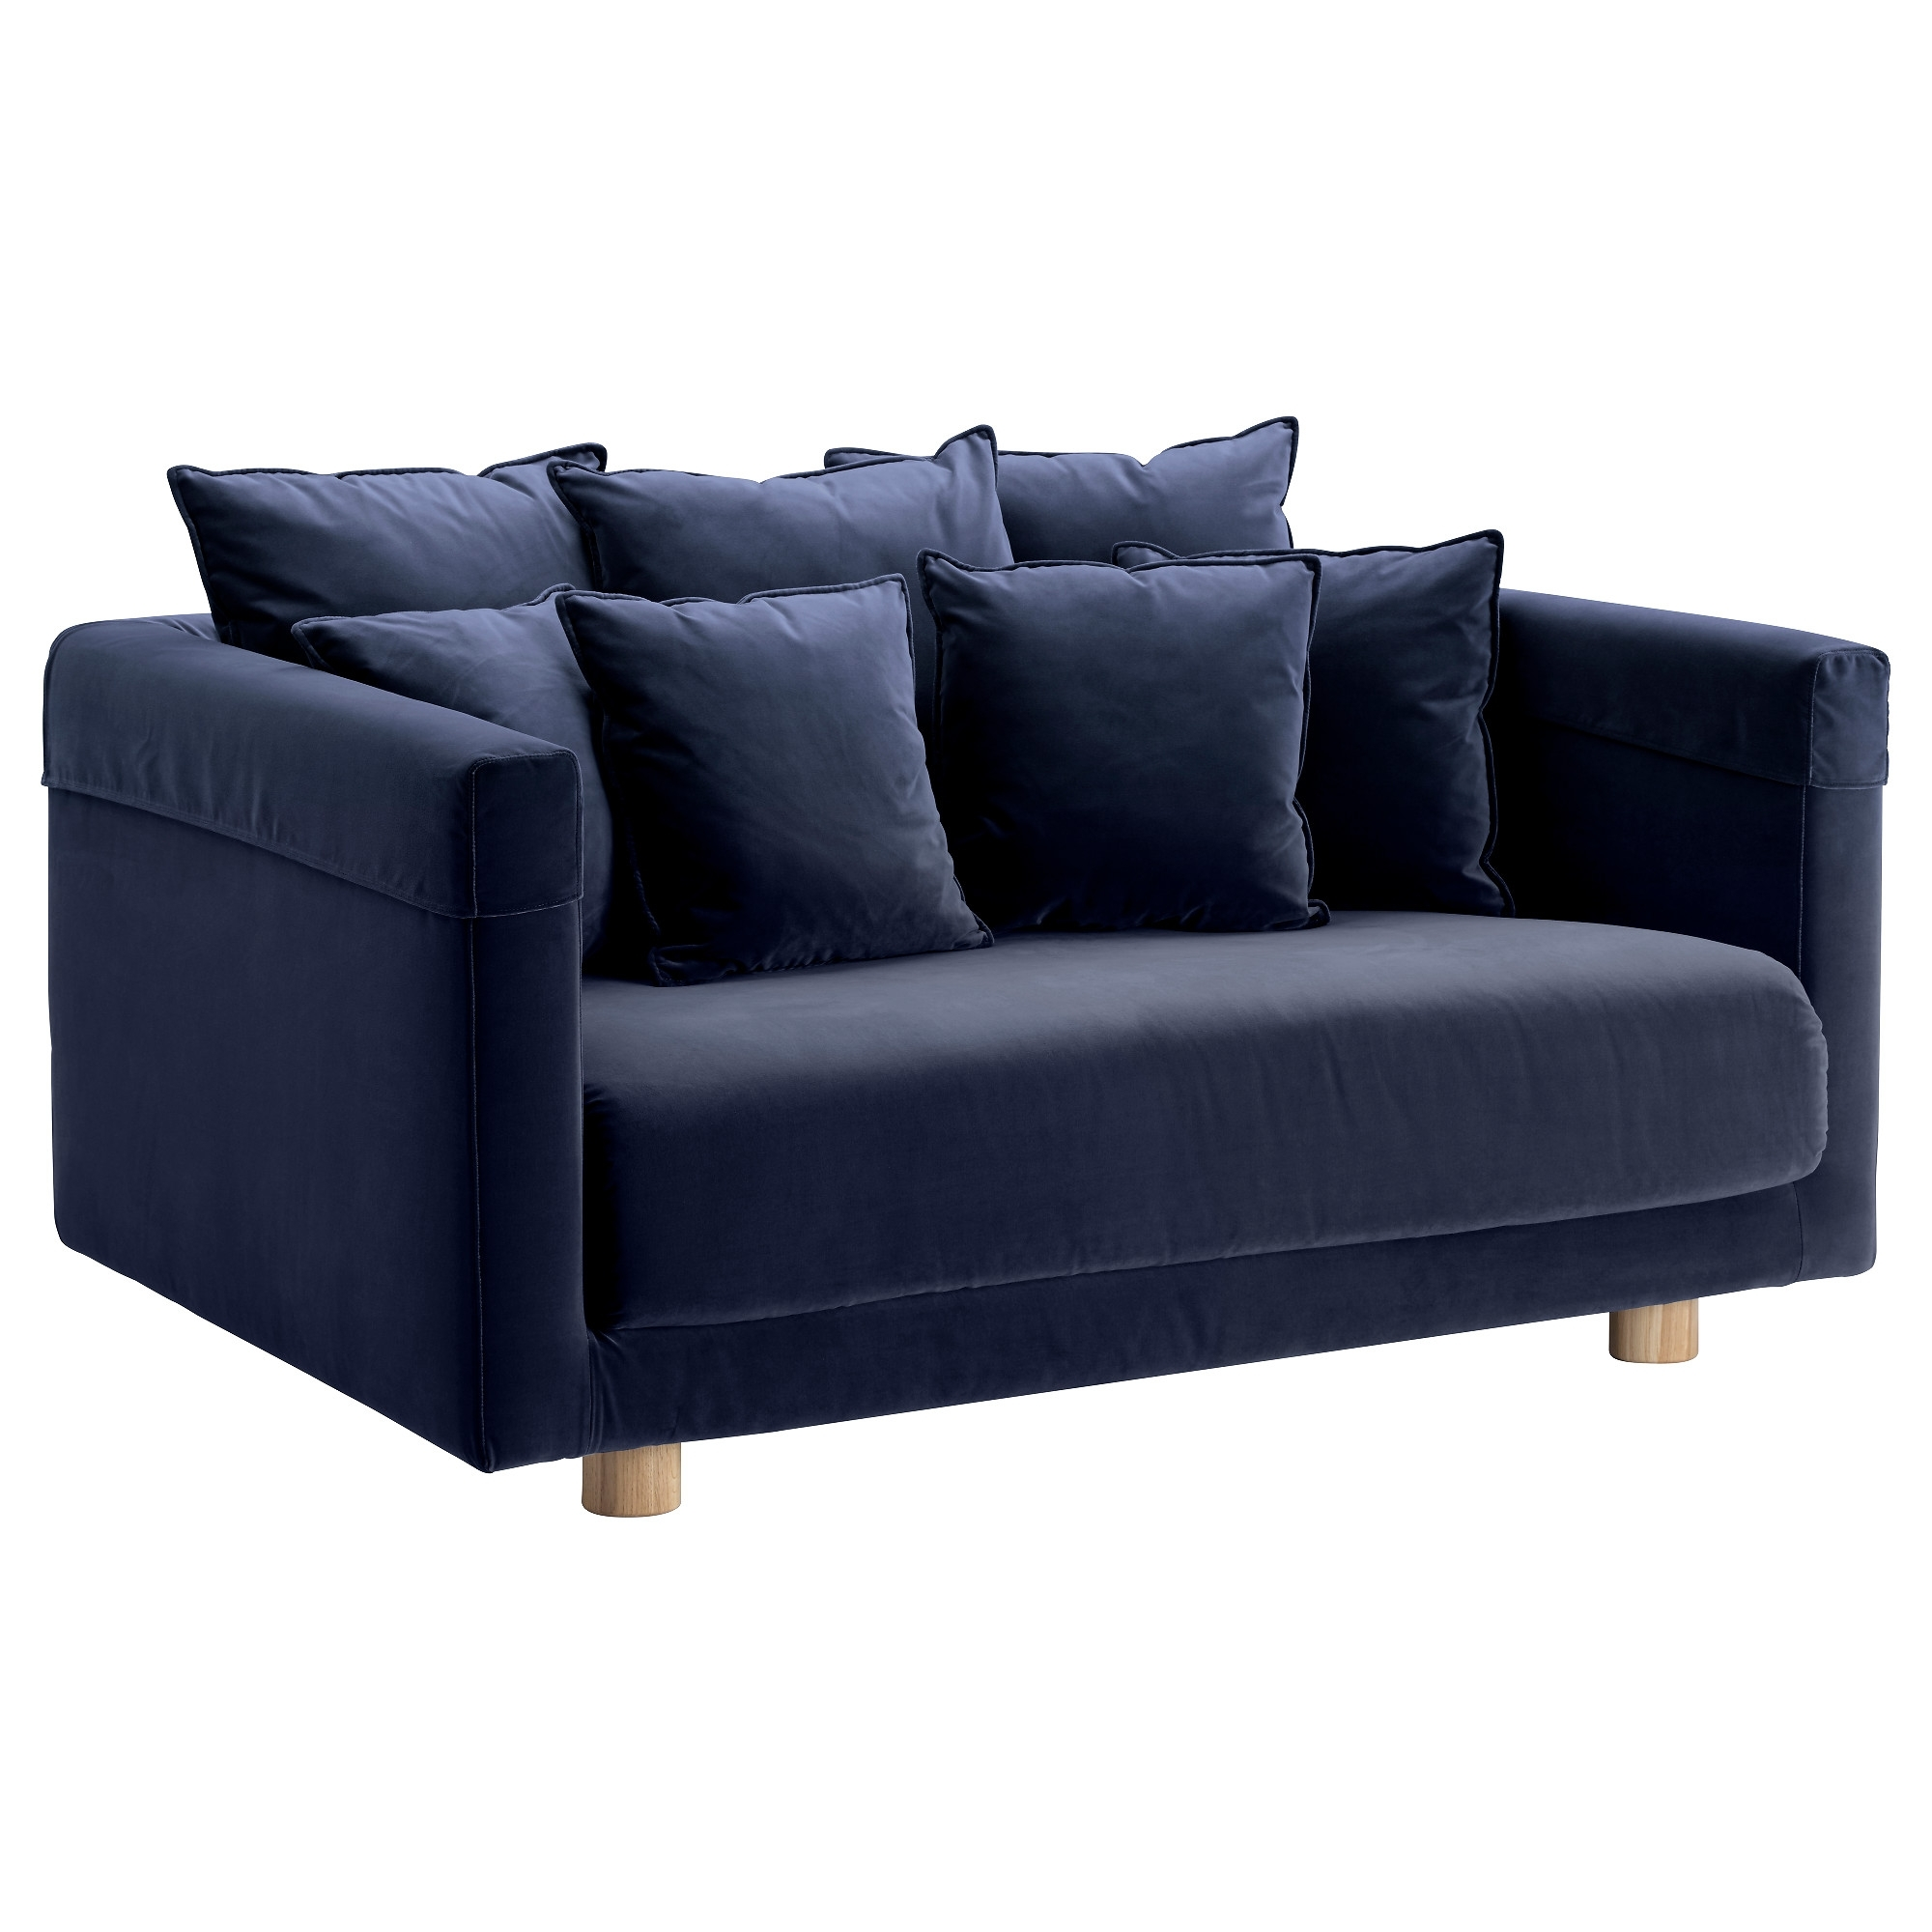 Stockholm 2017 Two Seat Sofa Sandbacka Dark Blue – Ikea Within Well Known Ikea Two Seater Sofas (View 11 of 15)